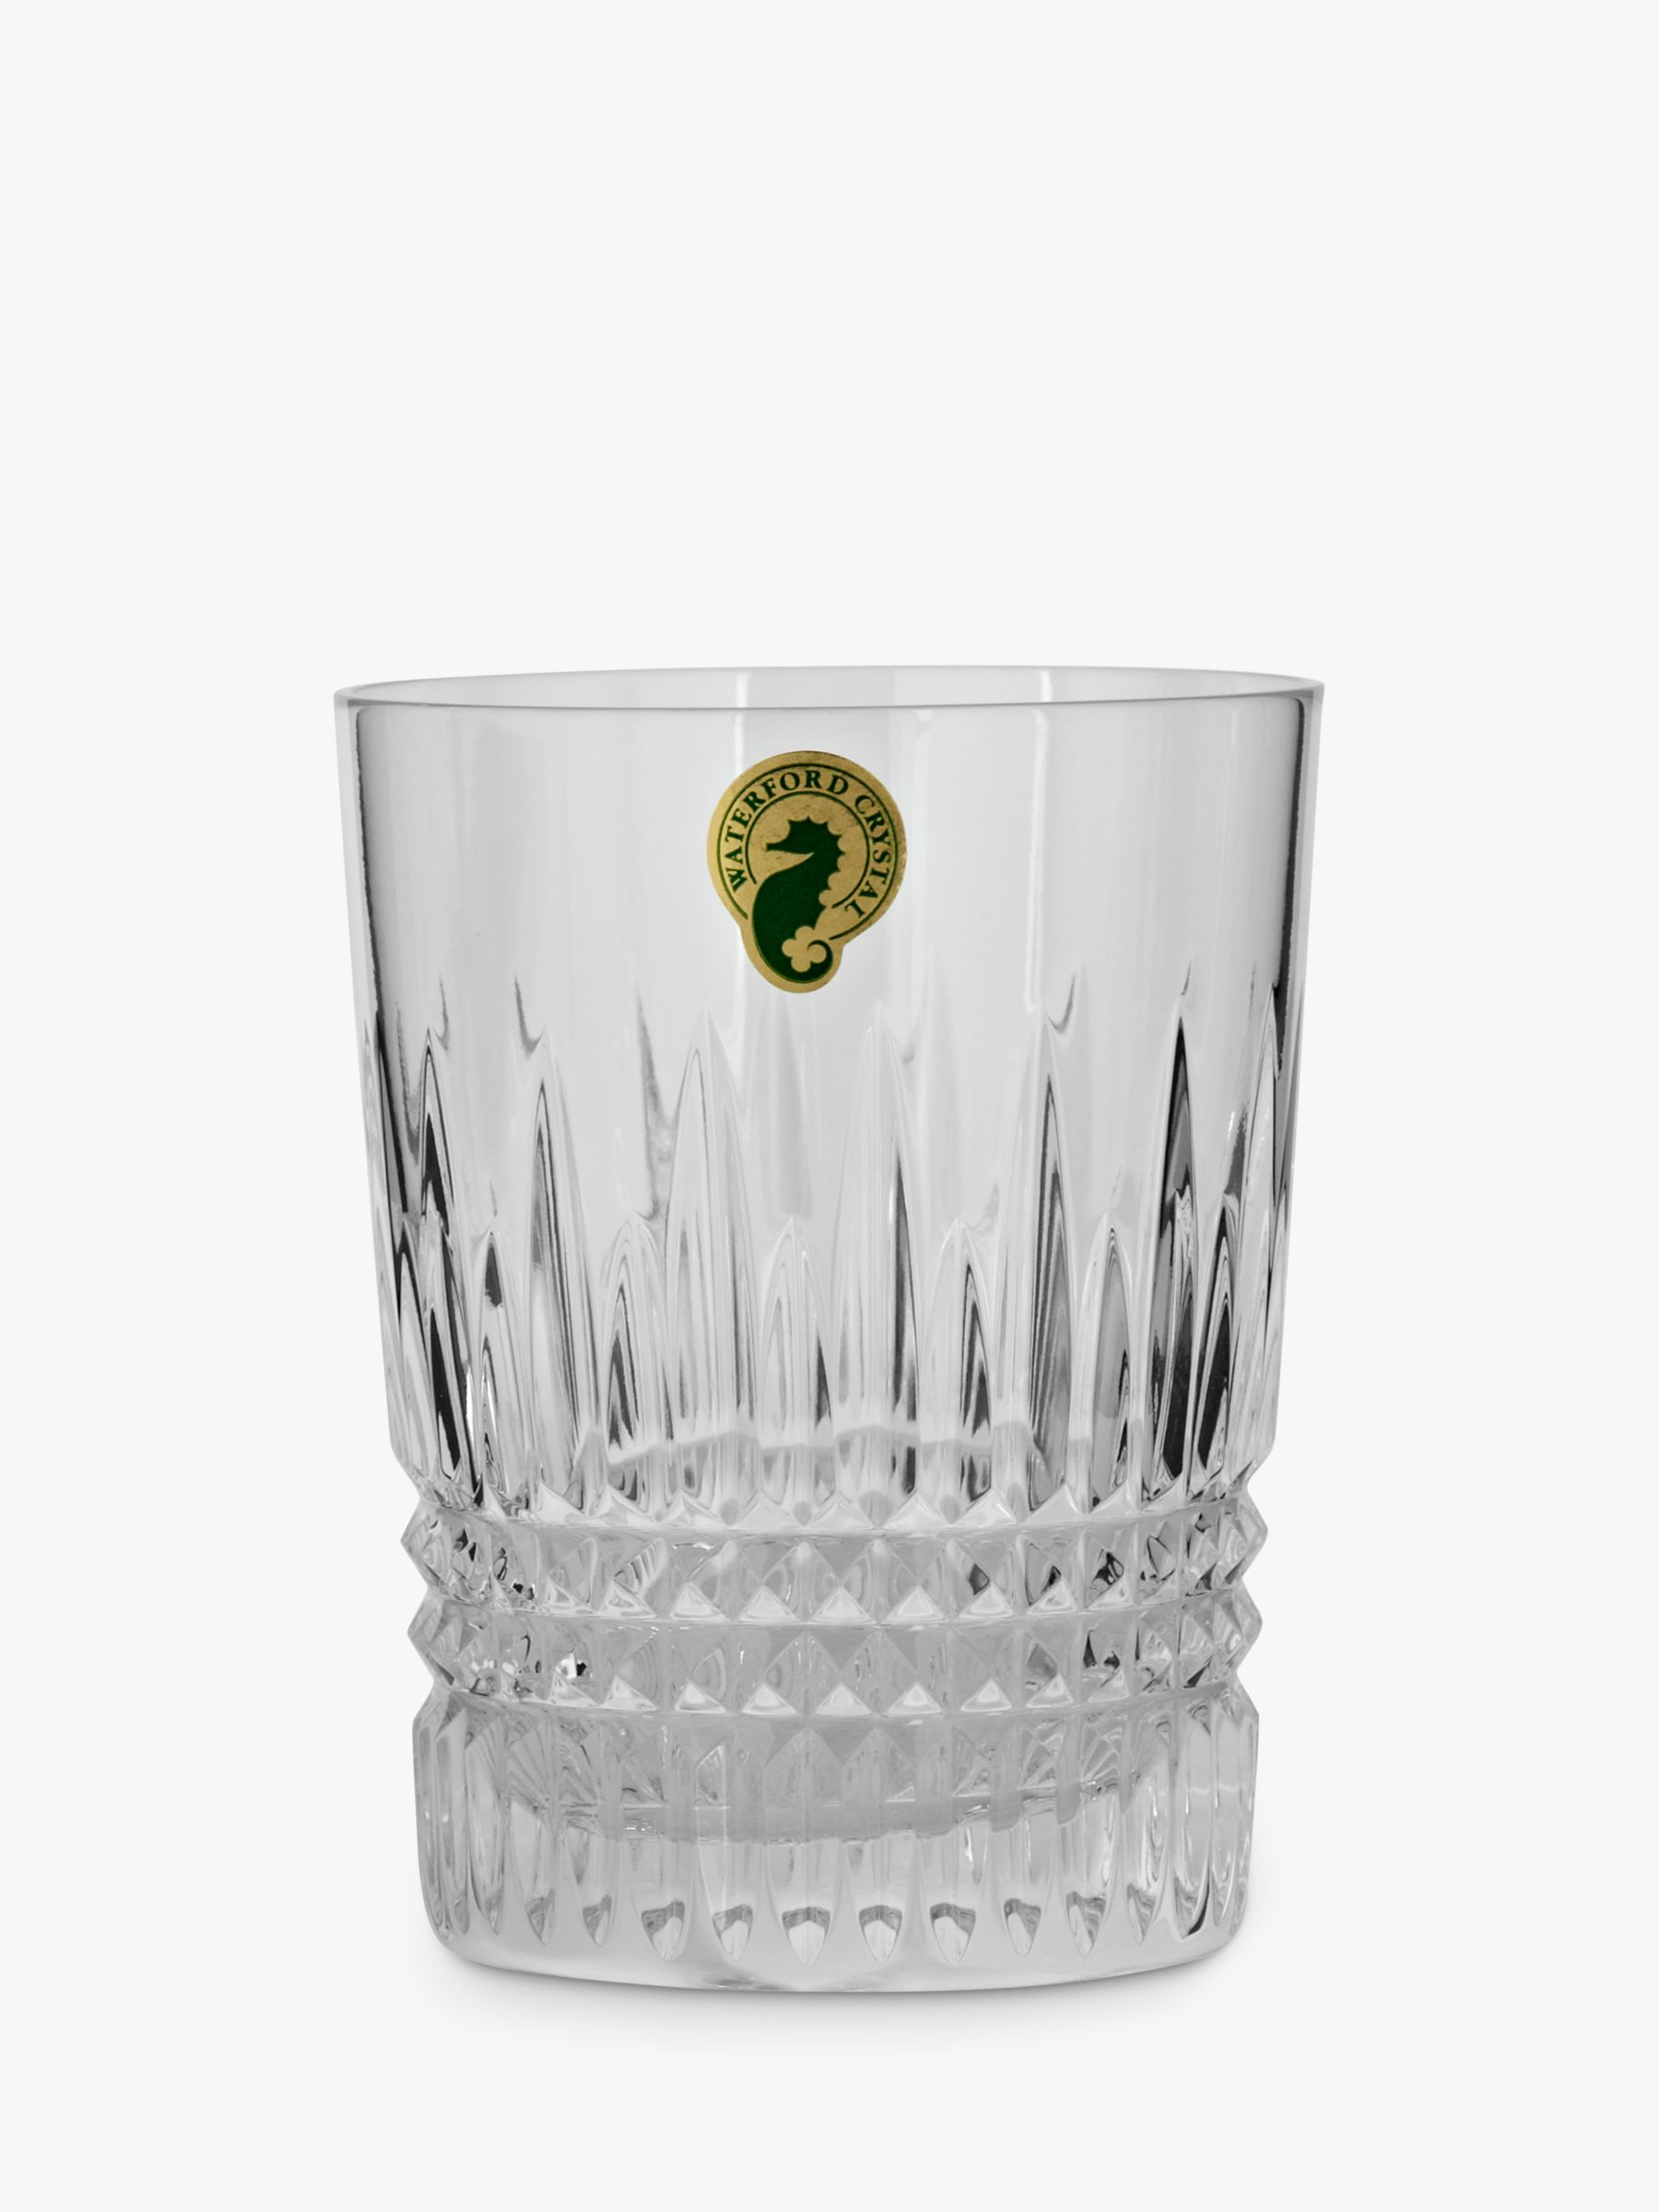 Waterford Waterford Lismore Diamond Cut Lead Crystal Tumbler, Set of 2, 125ml, Clear